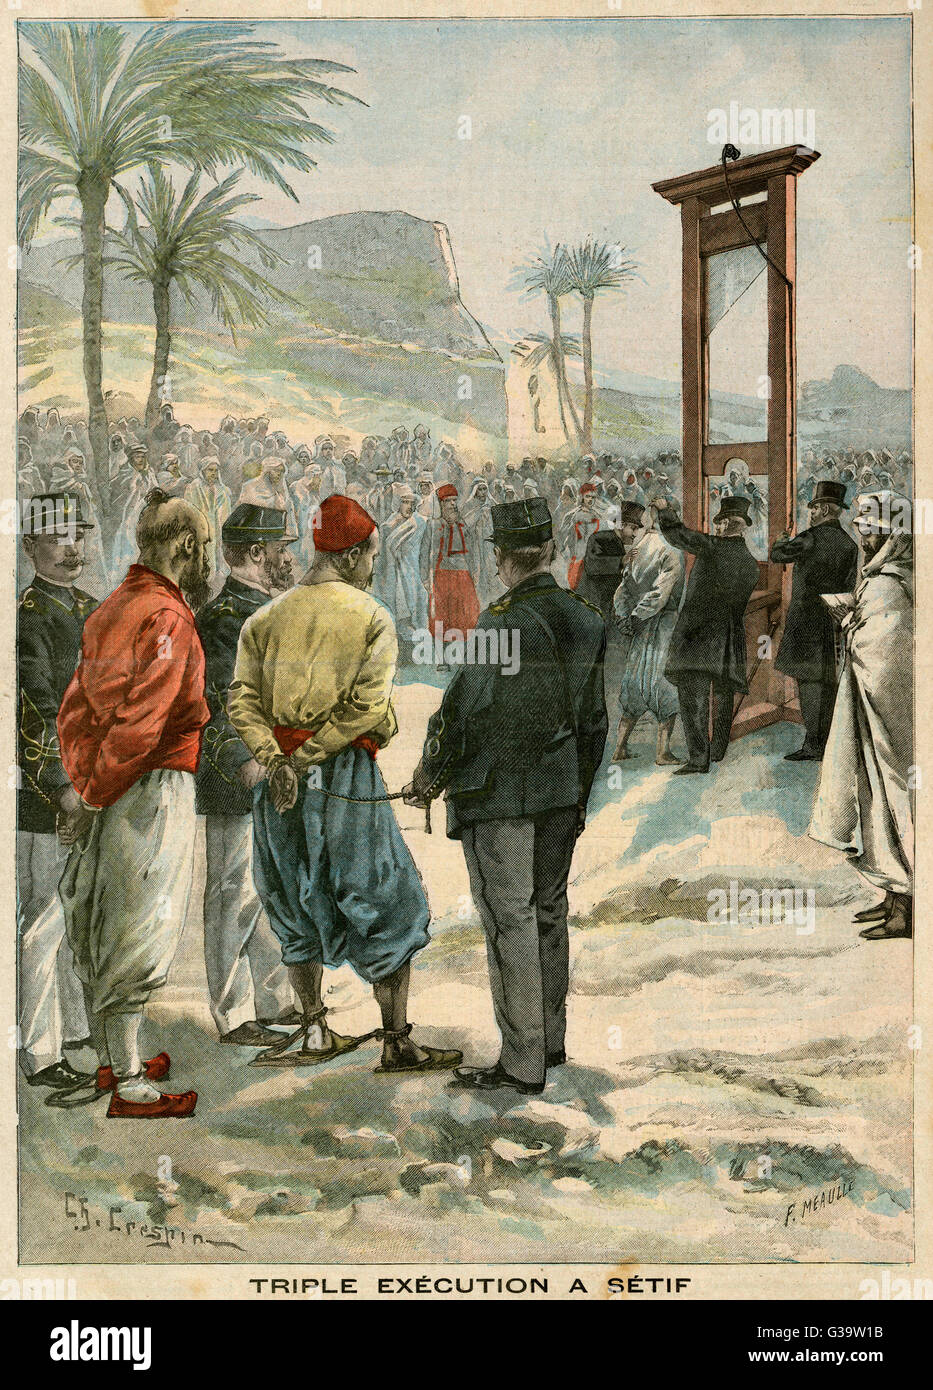 The French guillotine three  rebels at Setif         Date: 1900 - Stock Image